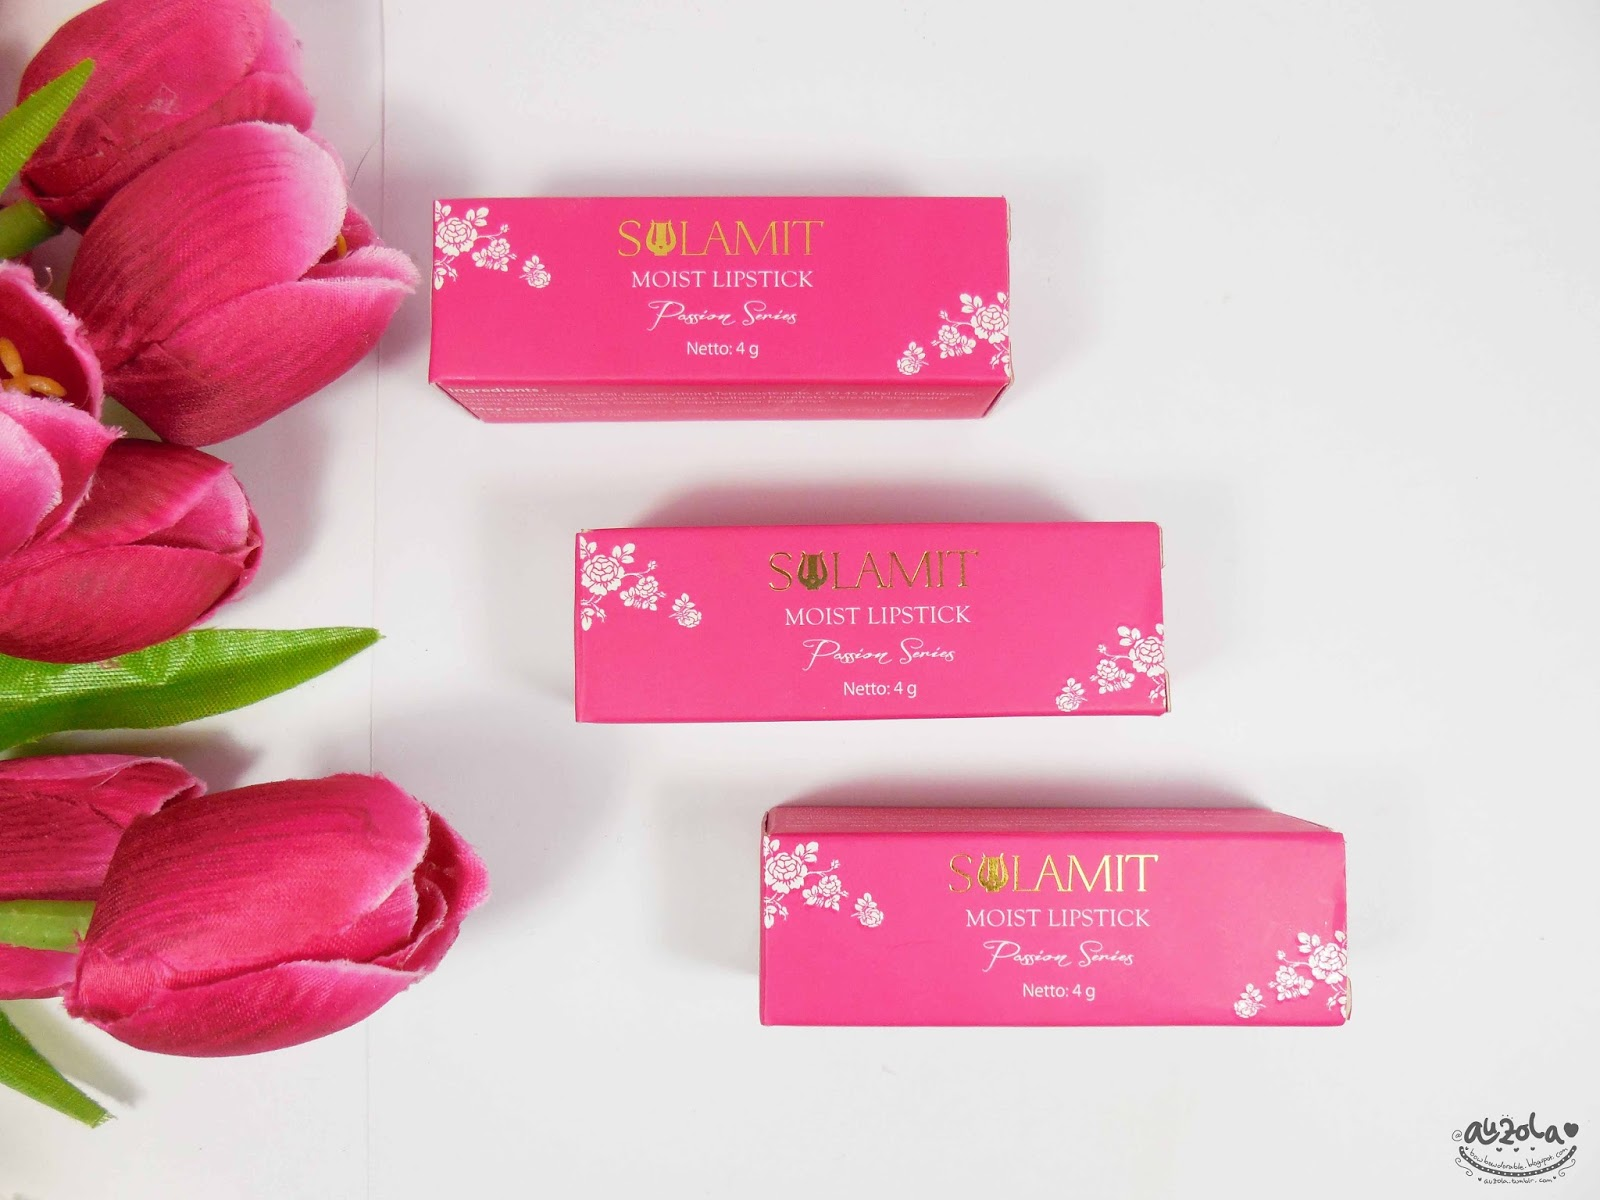 For a quite cheap product i found the box is pretty with fuchsia color bined with white and gold You can see the details of the product at sides of